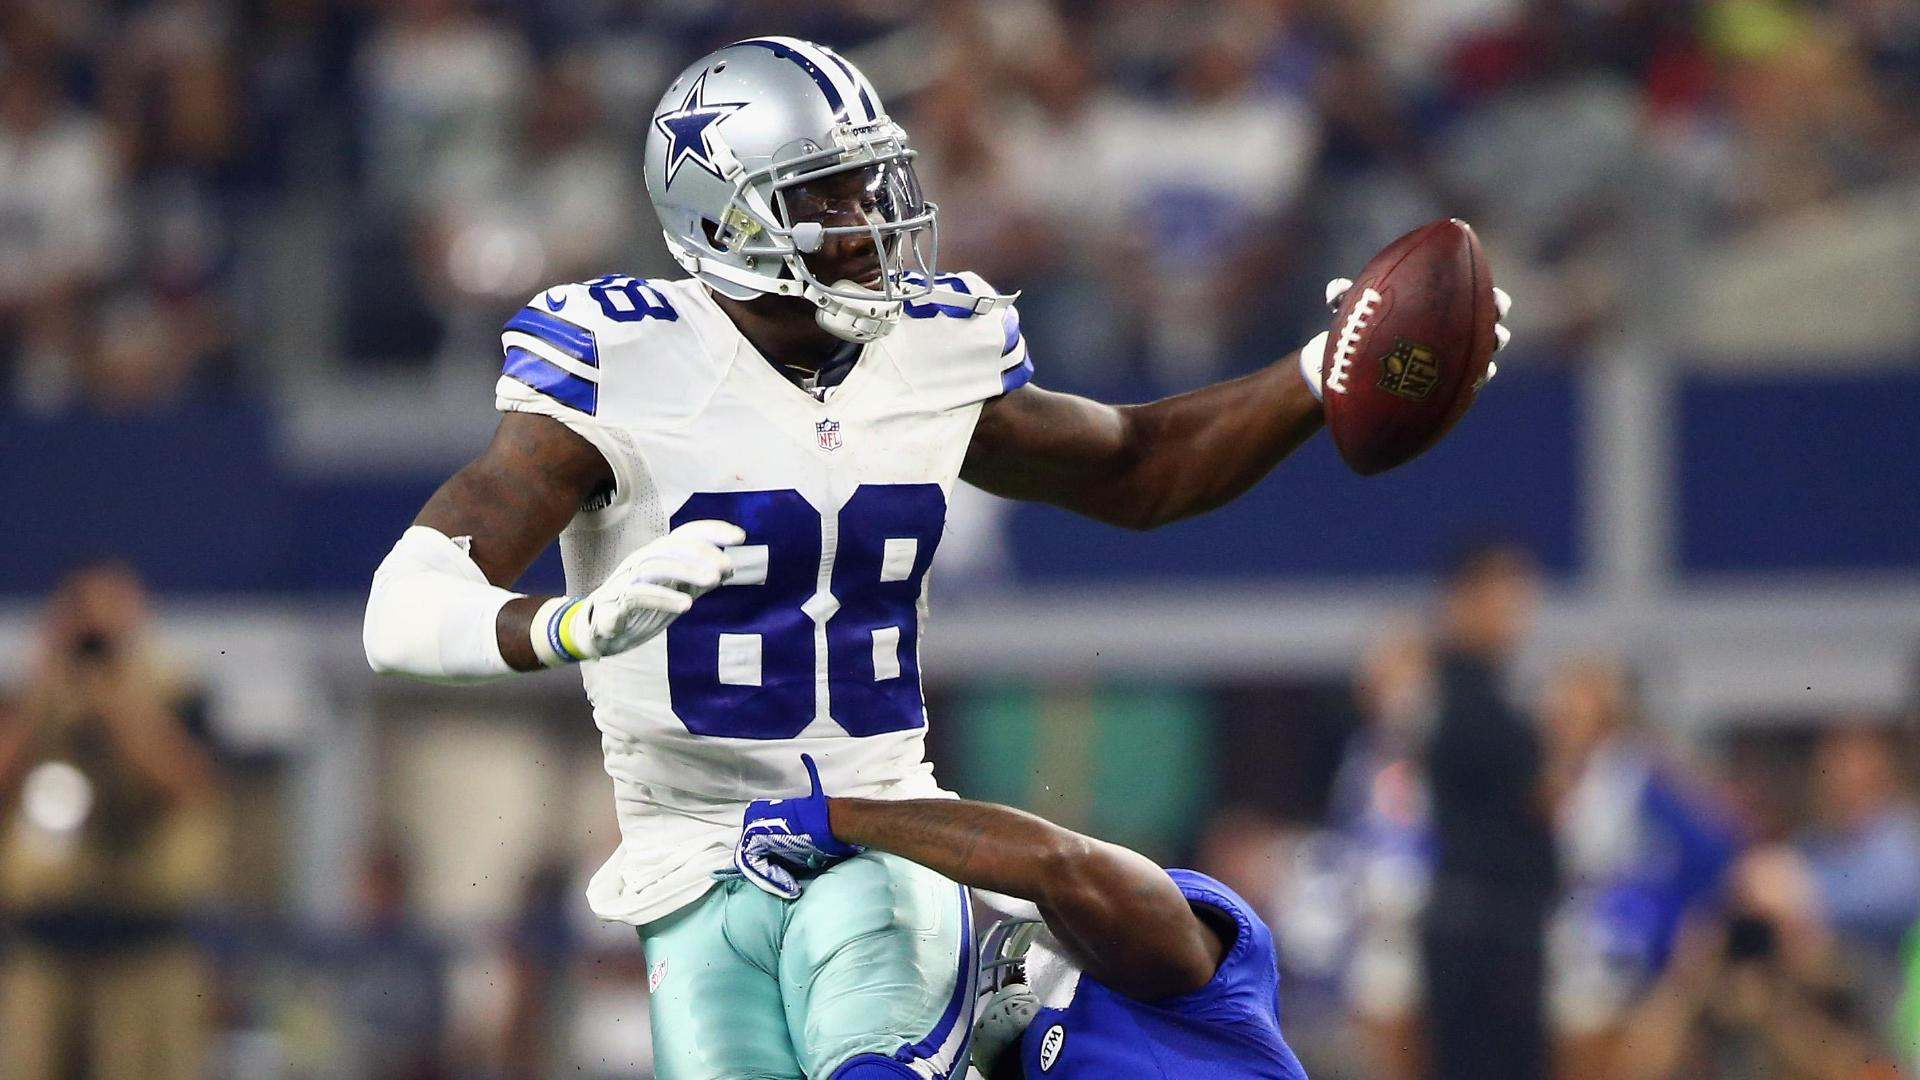 Could Special Coach Help Dez Bryant's Route Running?